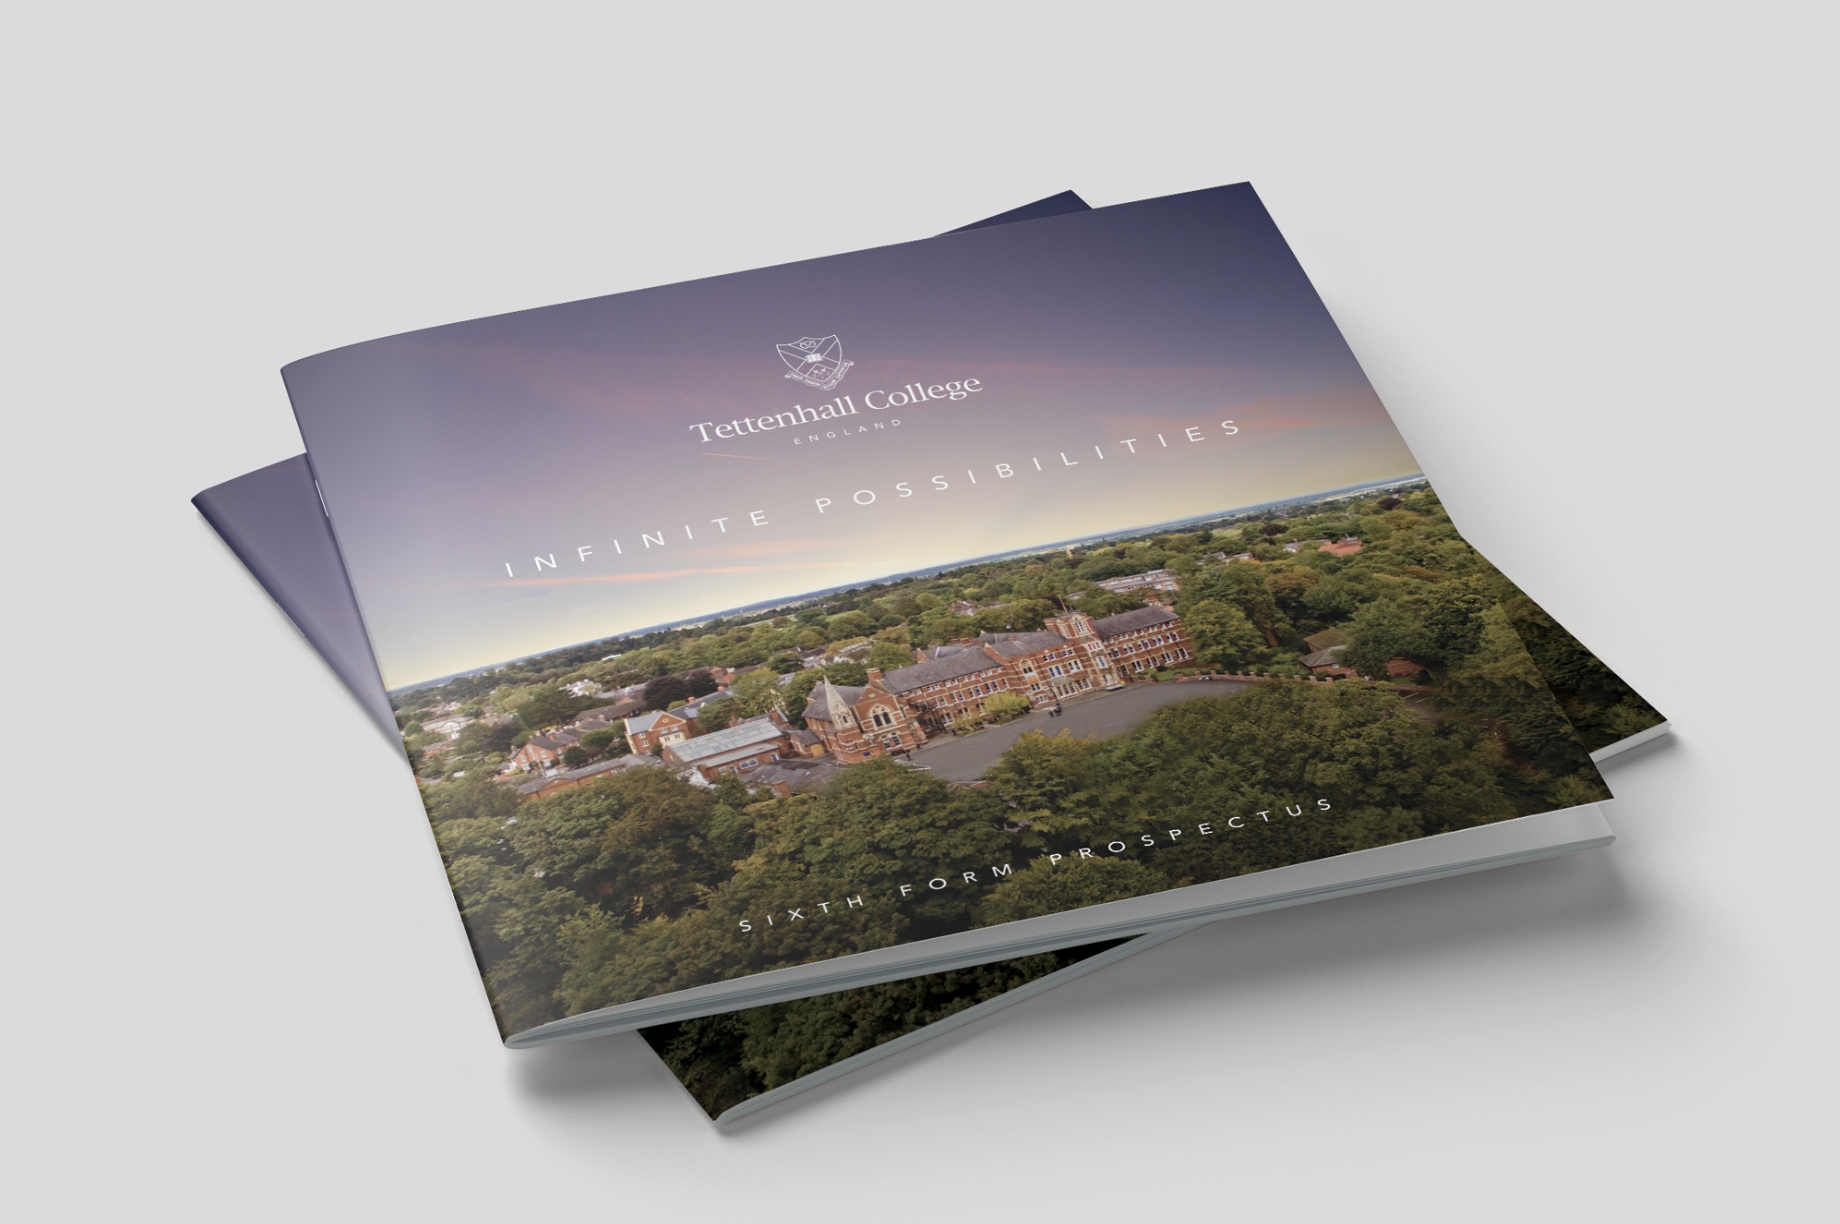 Tettenhall College Book